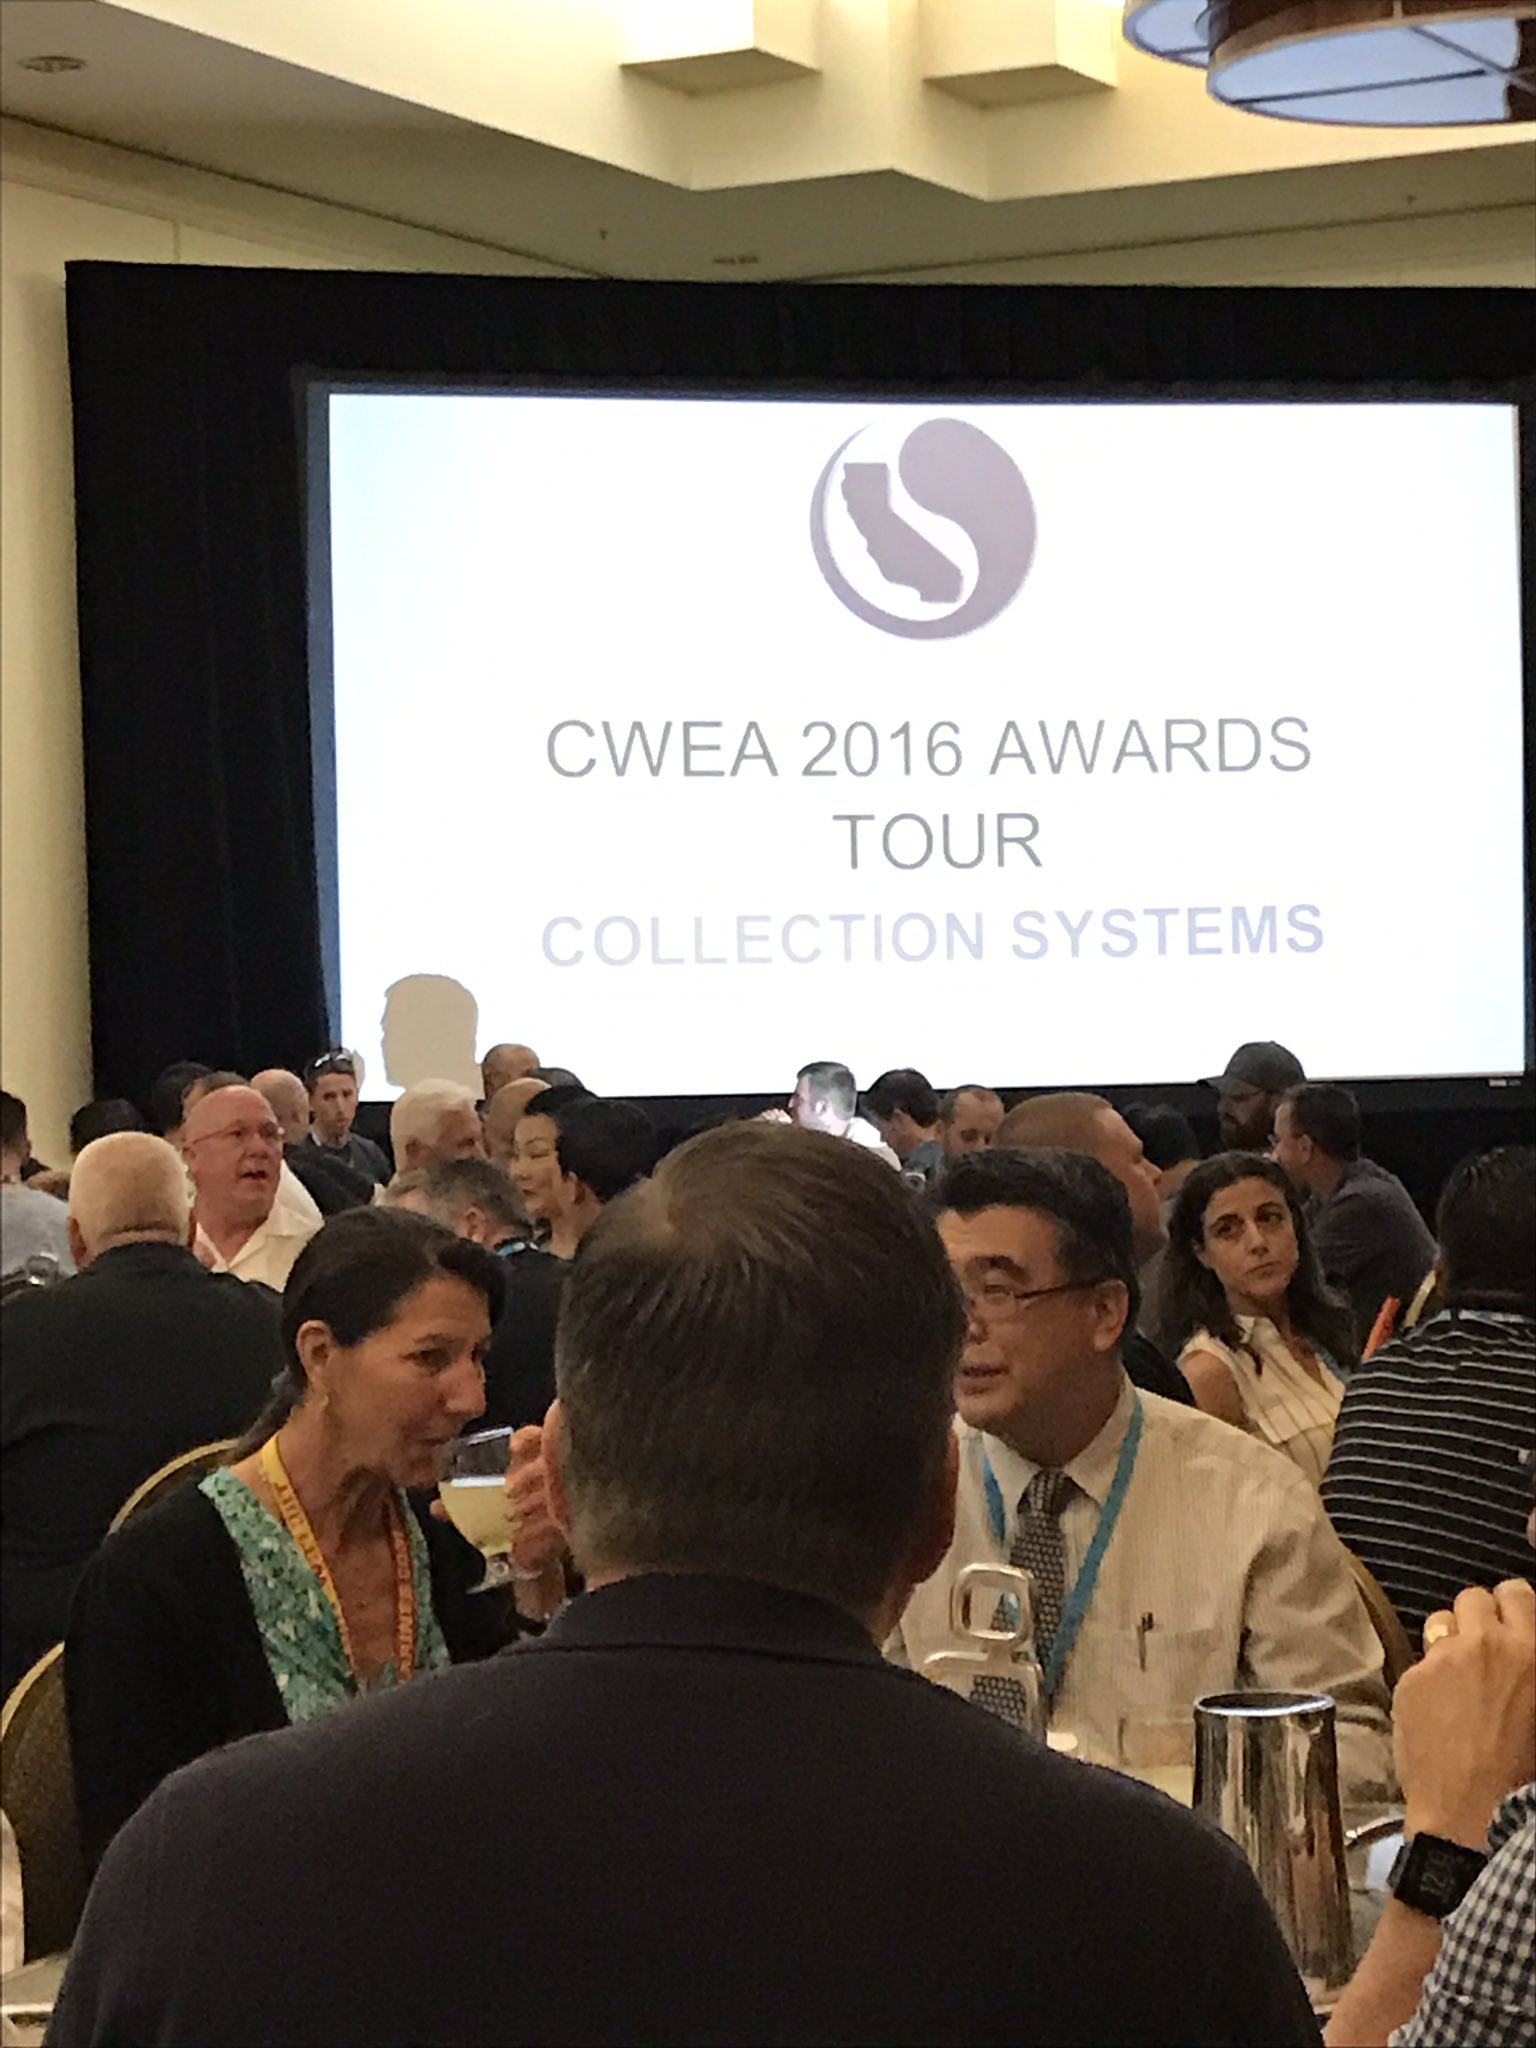 Collections lunch and Awards meeting #cweaac https://t.co/oRpUemkdeh